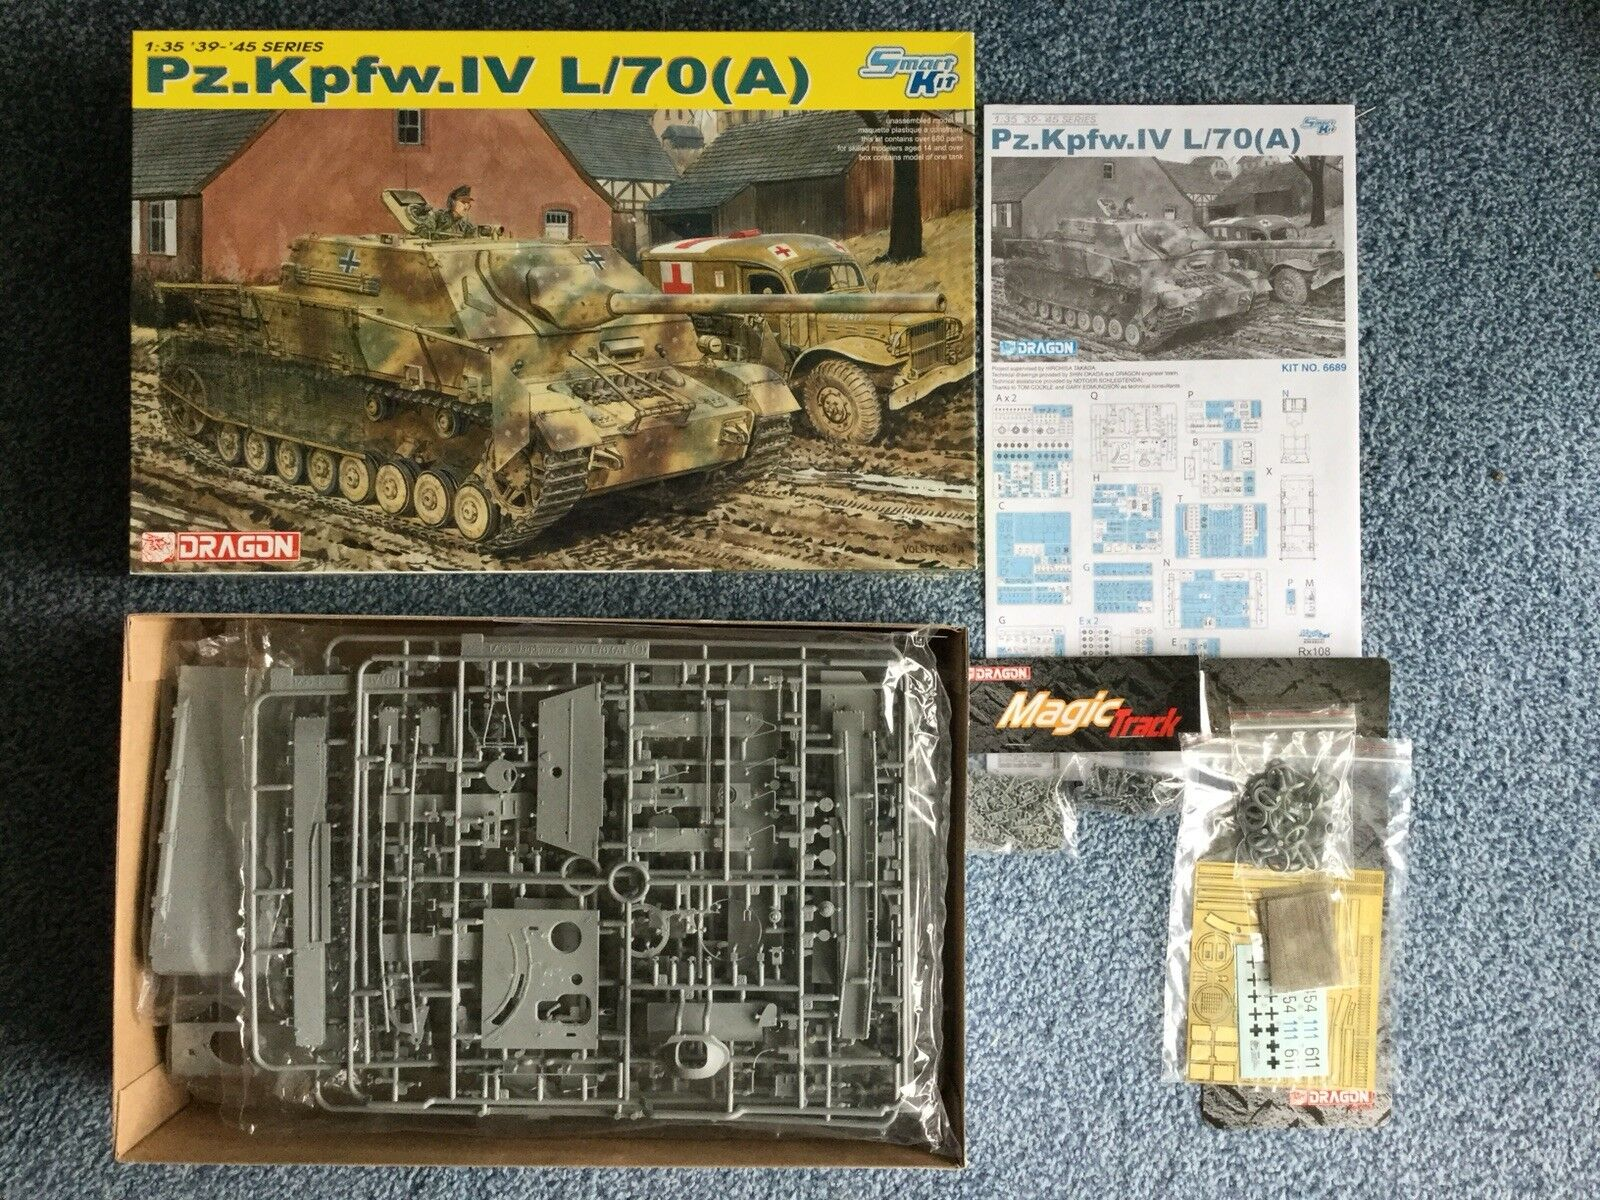 Dragon 1 35 Pz.Kpfw.IV L 70(A) model kit